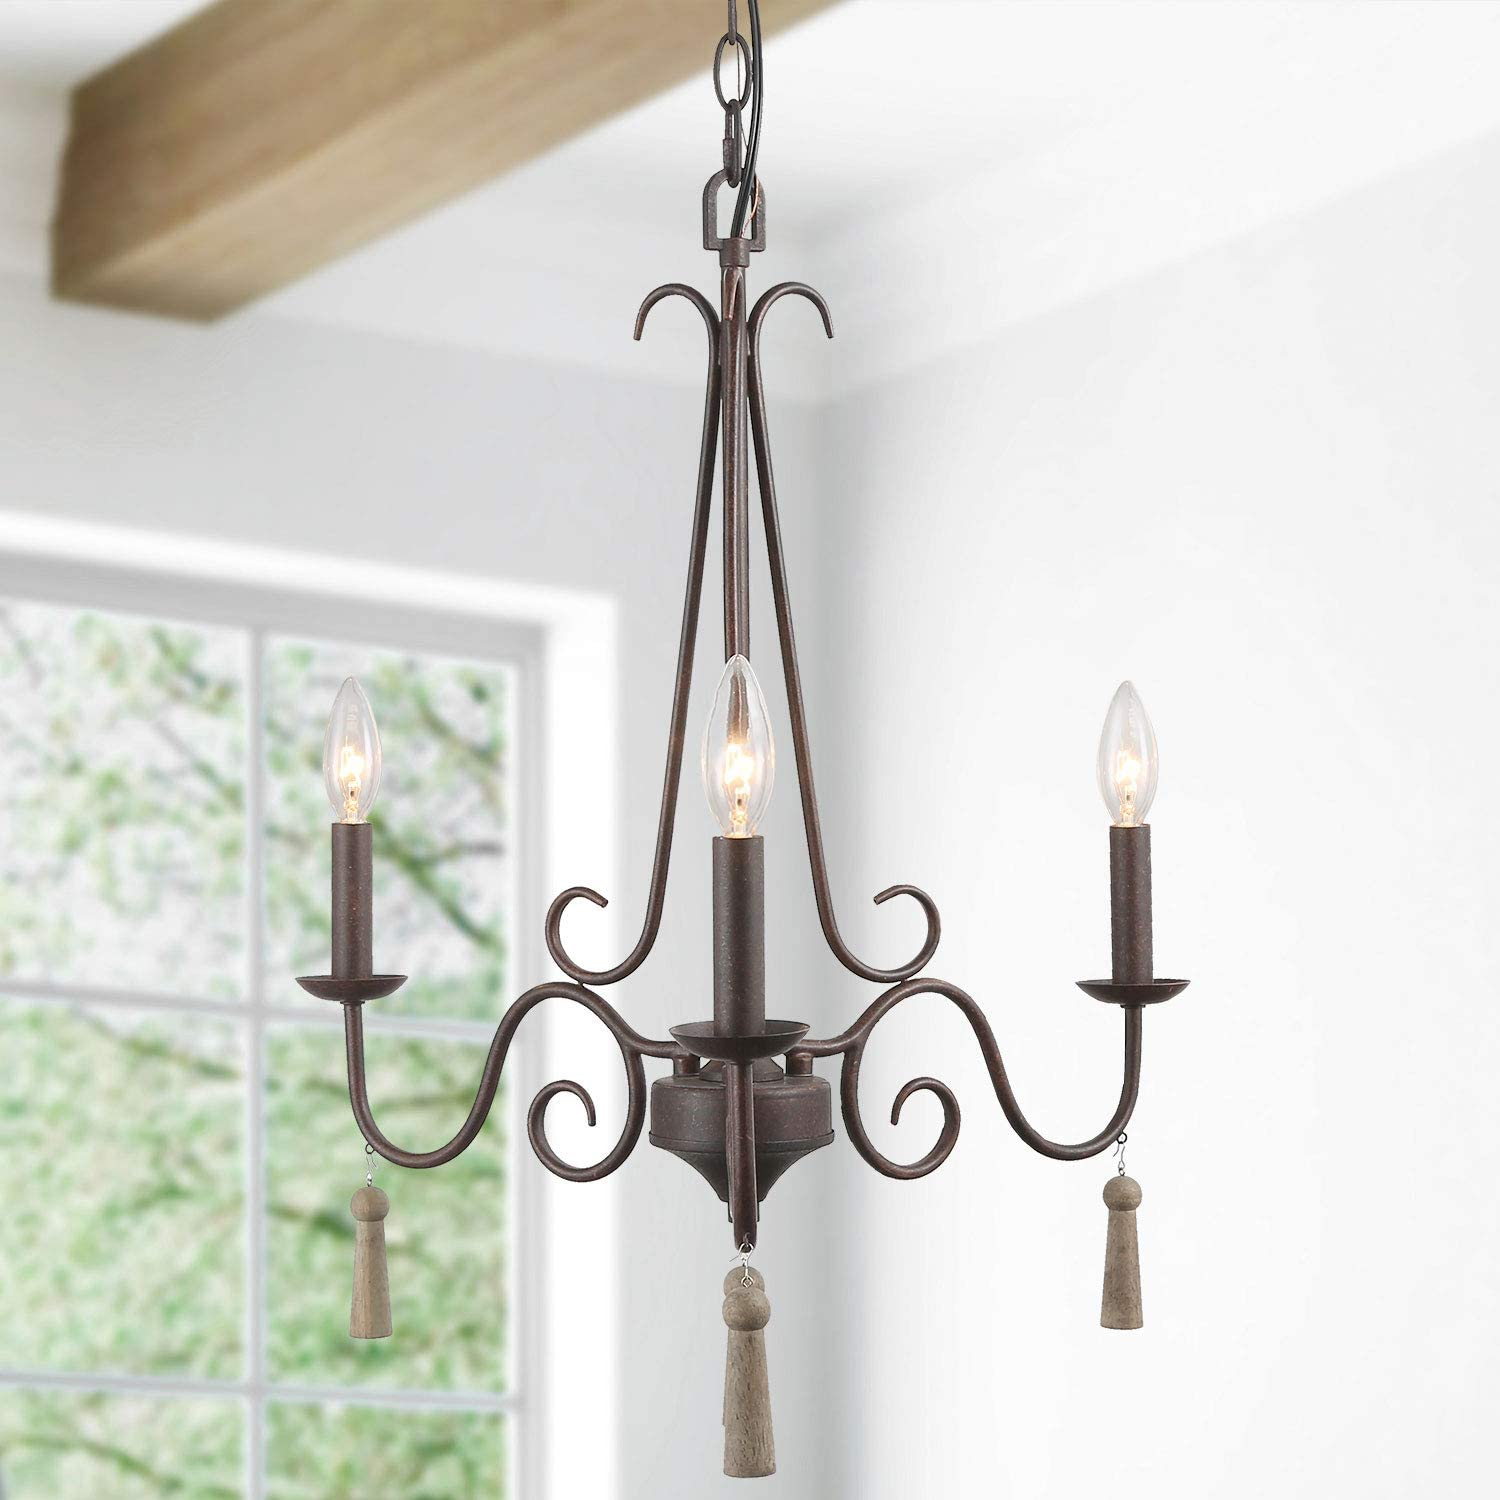 Farmhouse Chandelier French Country Light Fixtures for Dining Rooms Living Room and Foyer